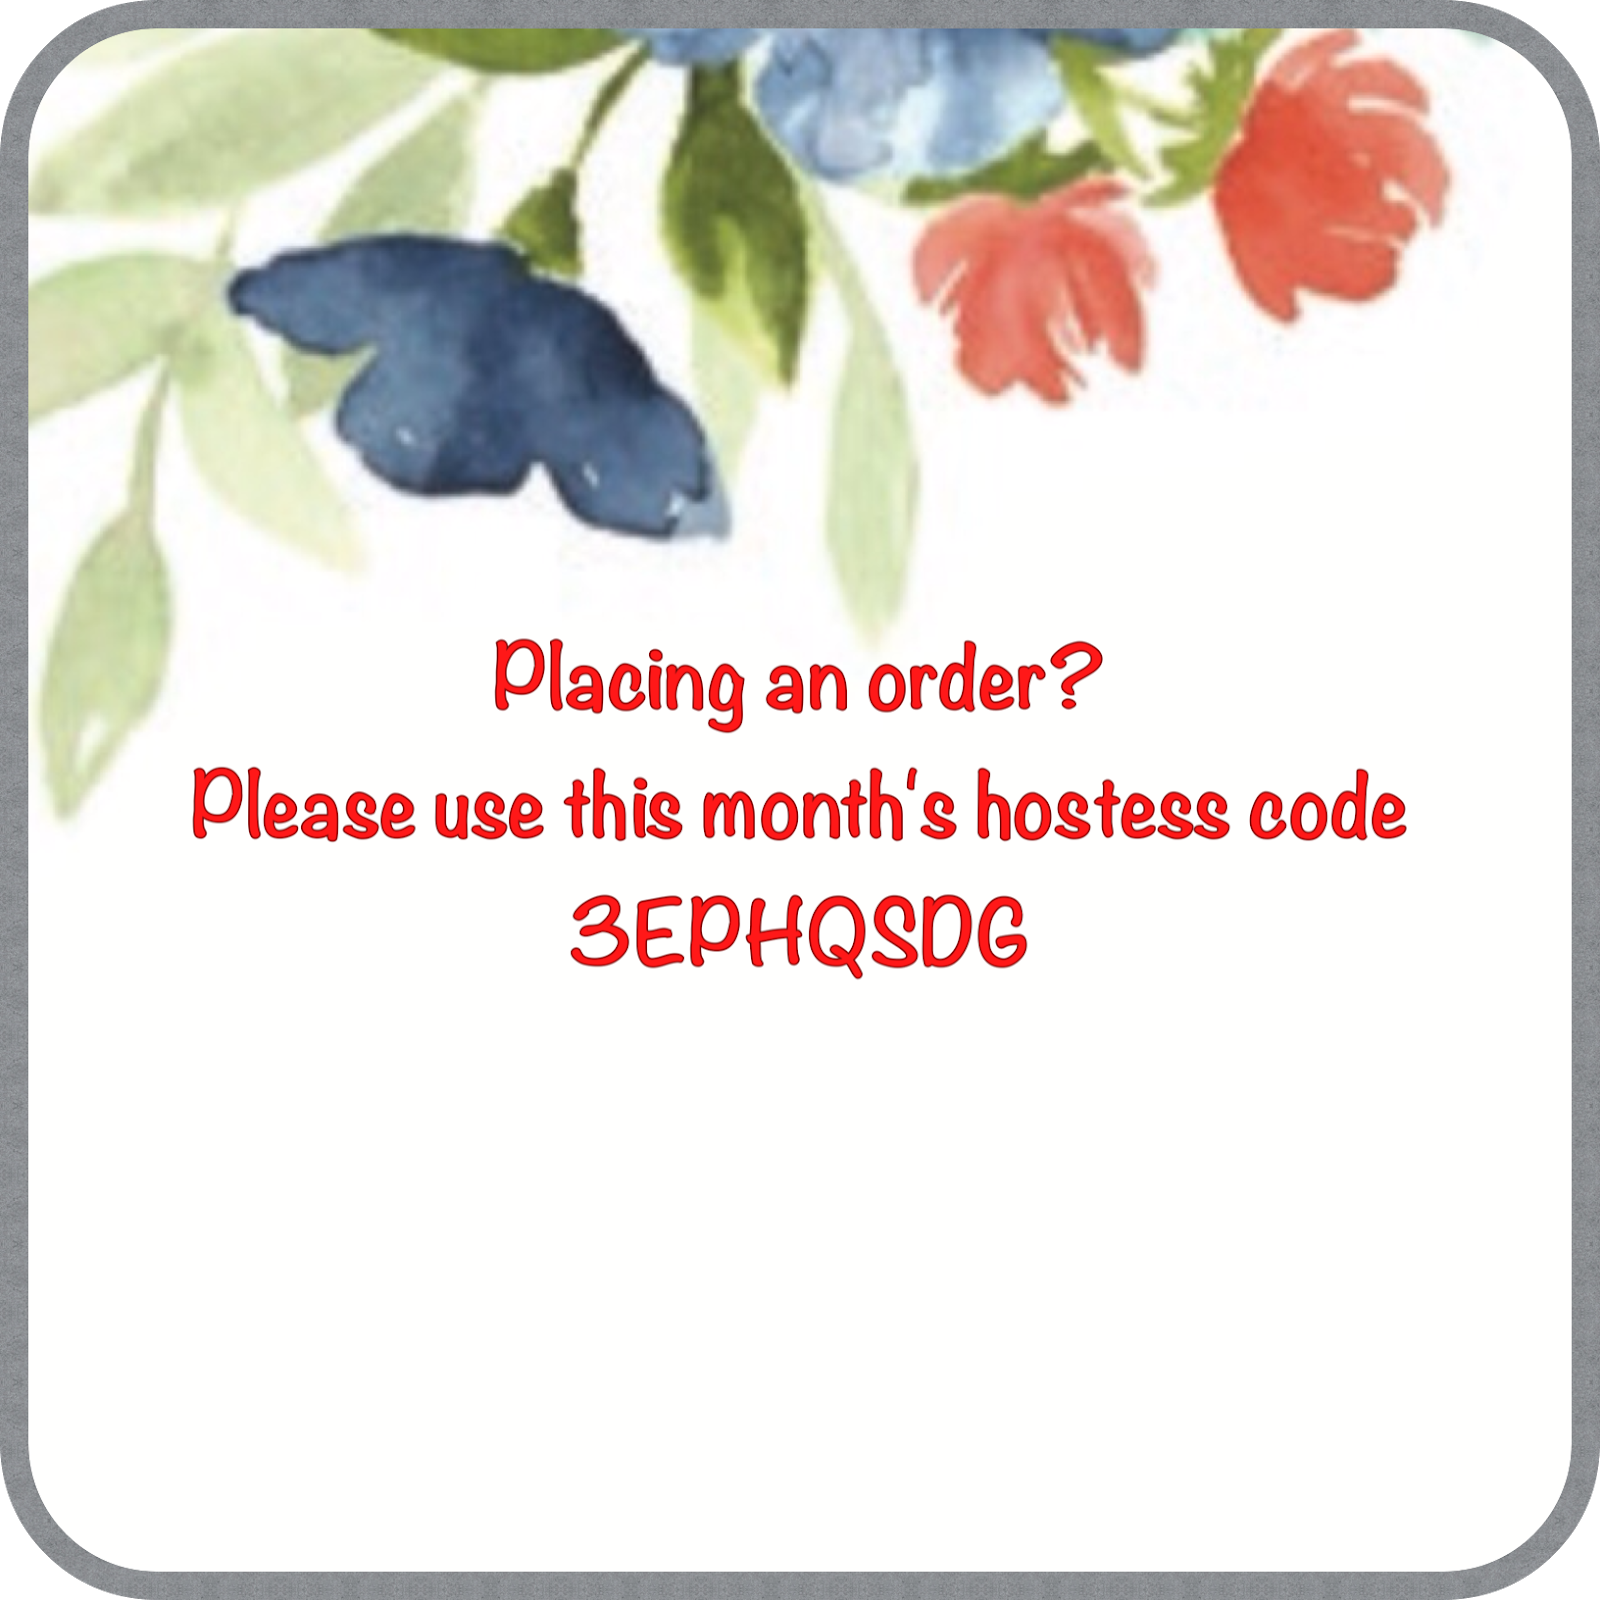 This month's hostess code